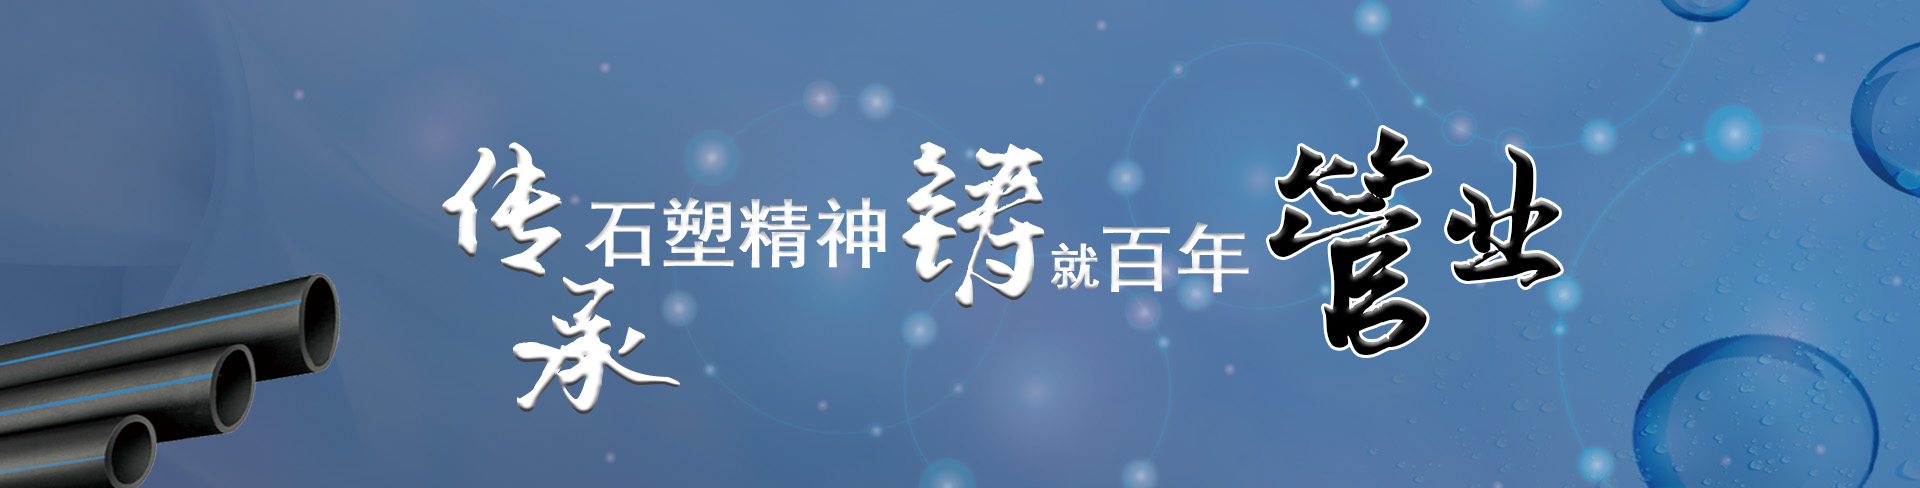 http://www.szssslc.cn/data/upload/202010/20201026135440_874.jpg